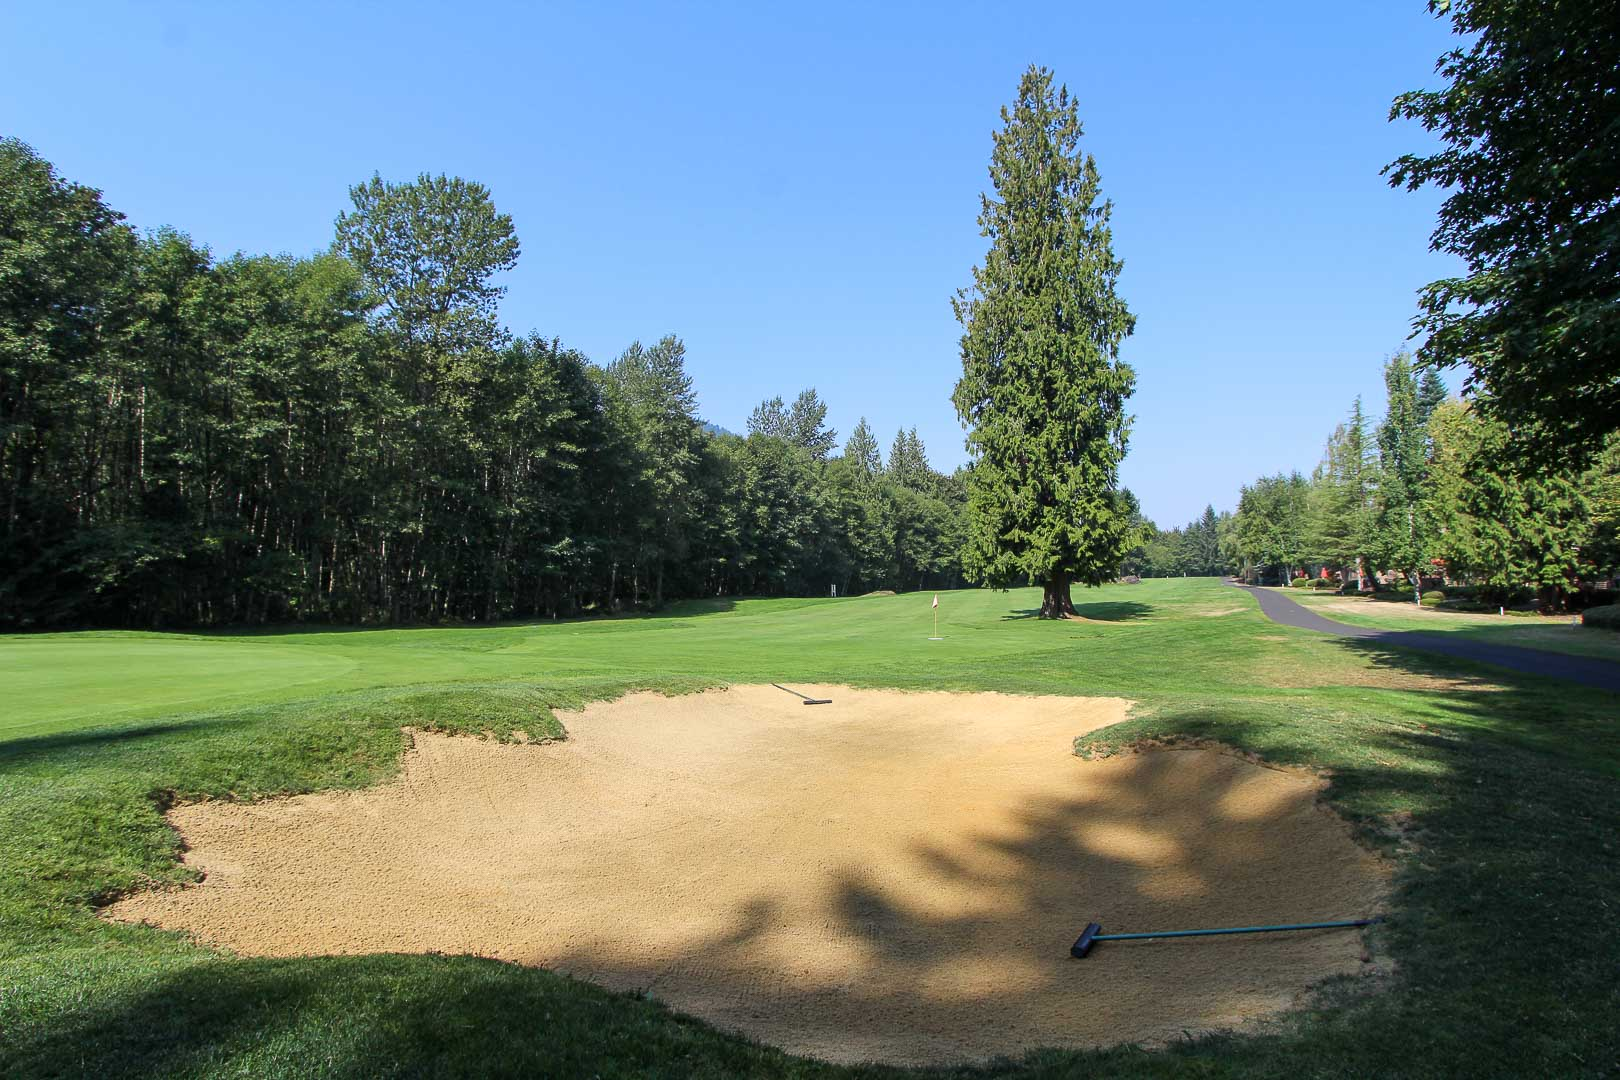 A spacious golf course at VRI's Whispering Woods Resort in Oregon.